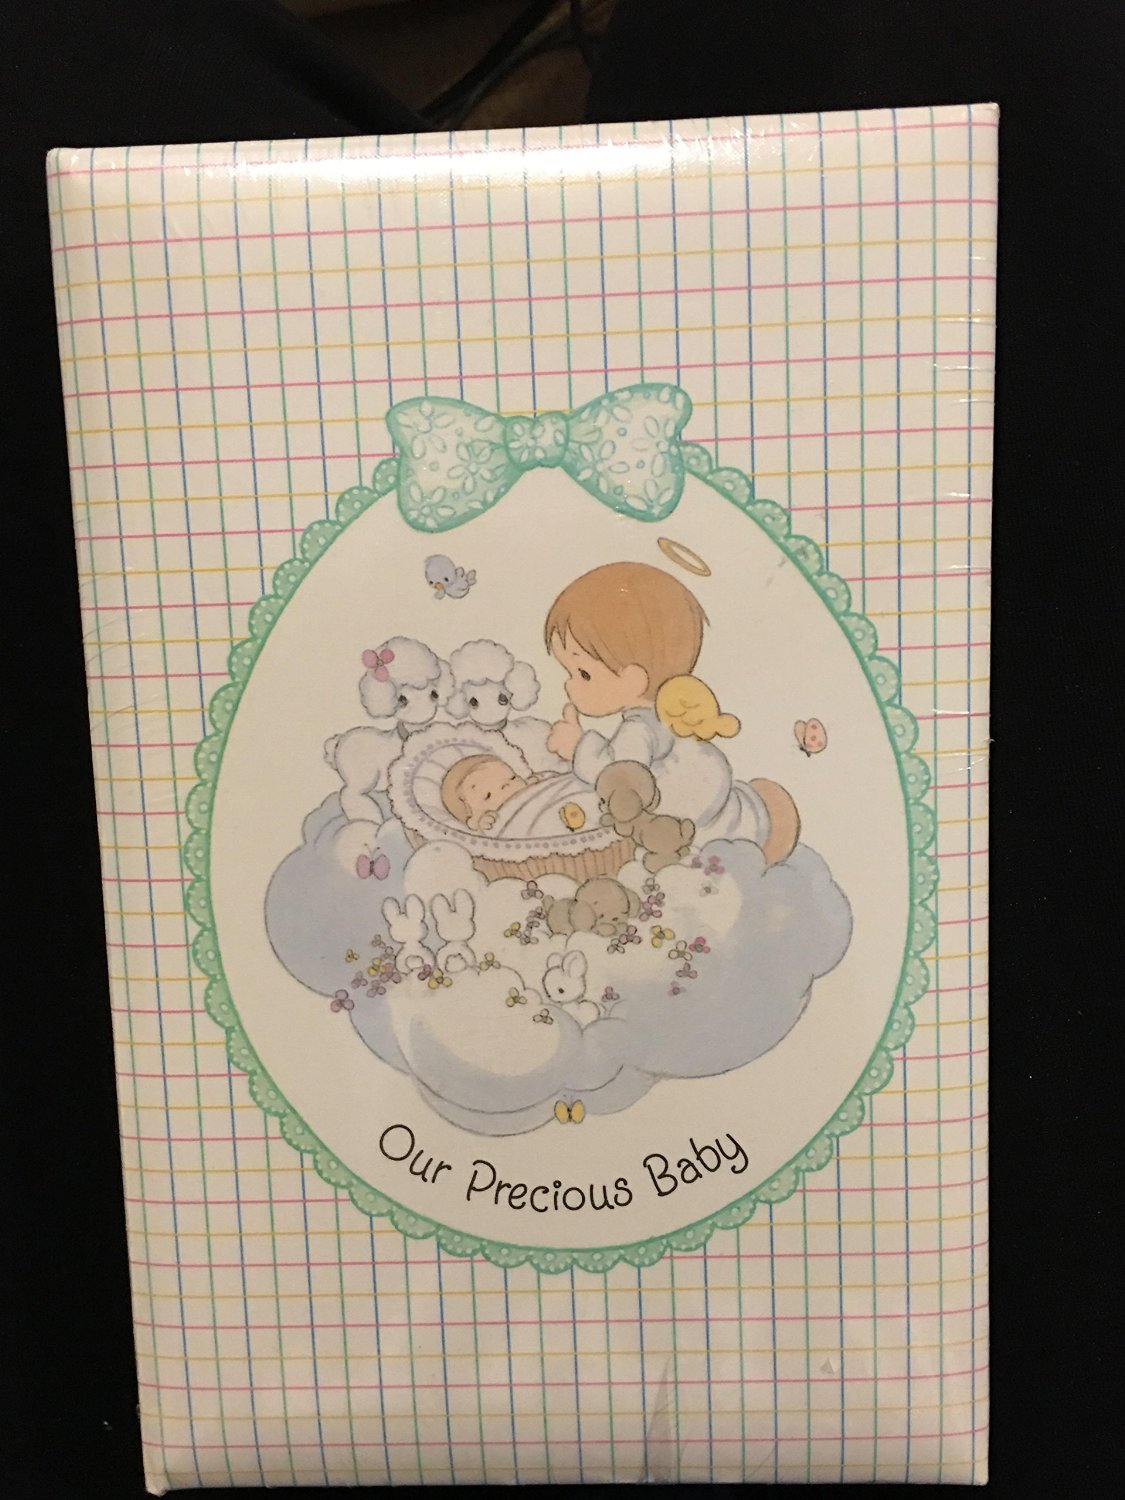 Cheap Precious Moments Baby Bedding Find Precious Moments Baby Bedding Deals On Line At Alibaba Com